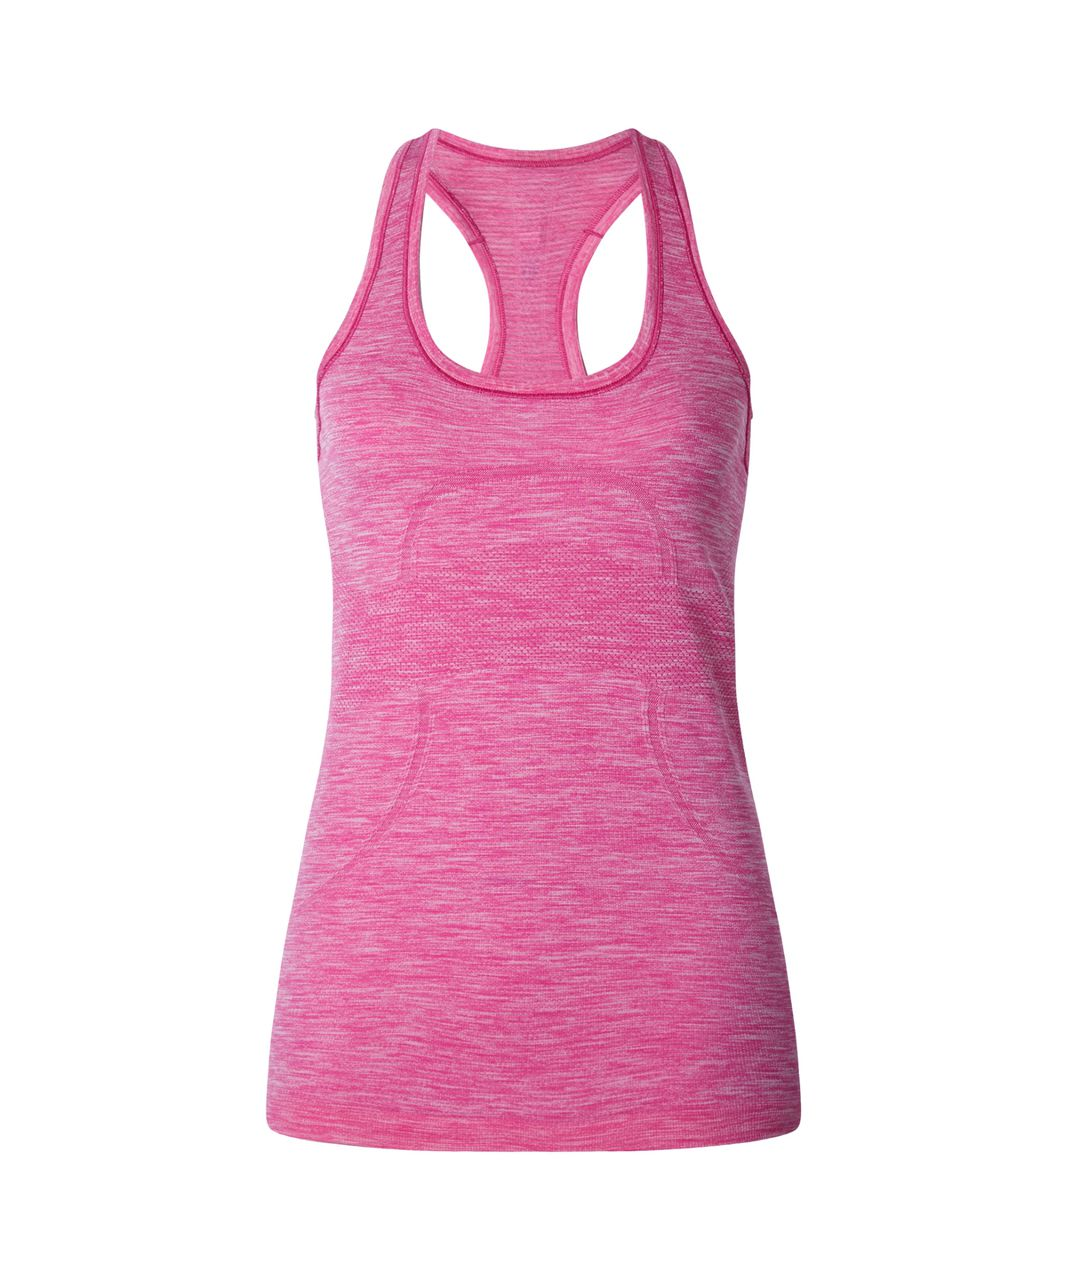 Lululemon Swiftly Tech Racerback - Heathered Pink Paradise